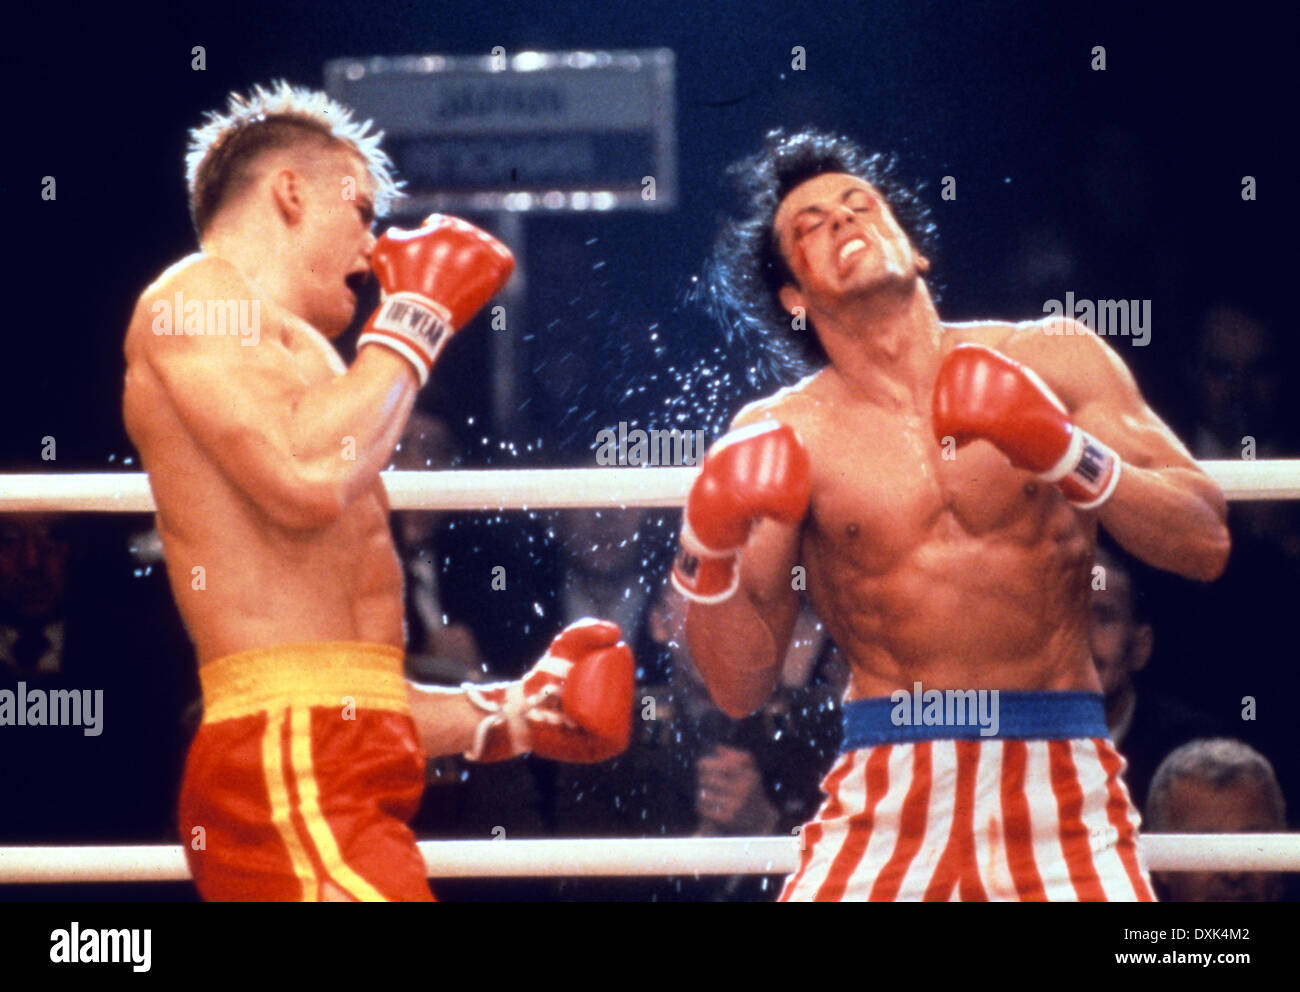 ROCKY IV (US1985) DOLPH LUNDGREN, SYLVESTER STALLONE PICTURE - Stock Image